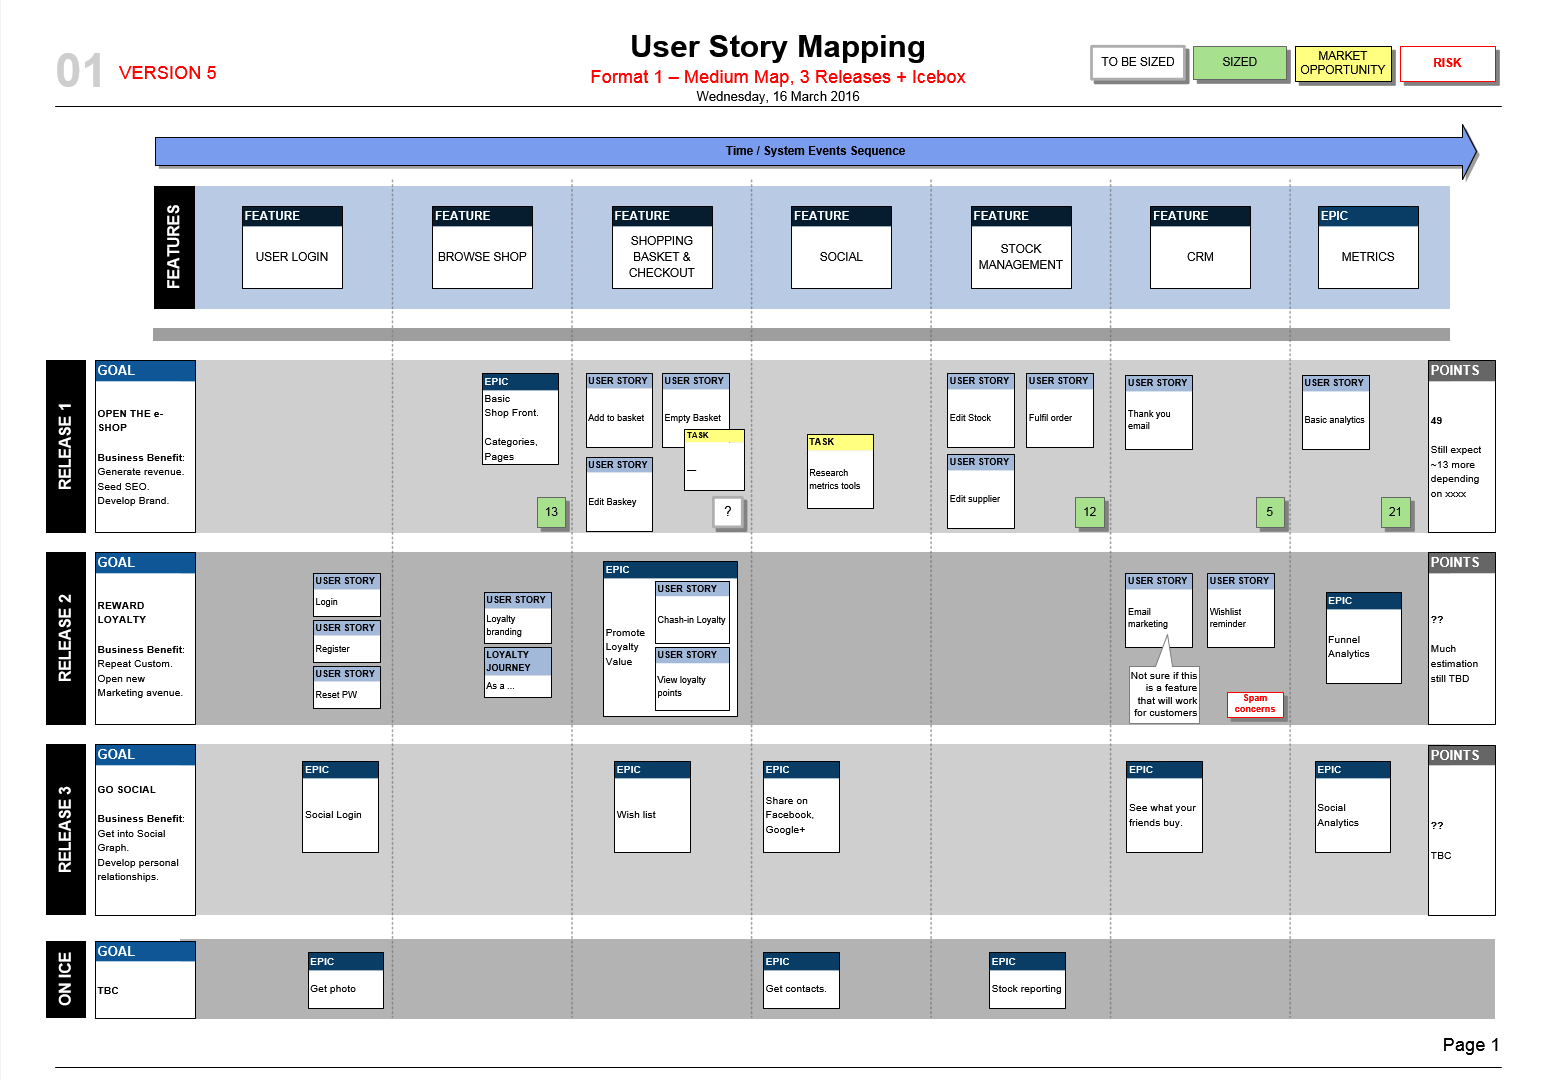 How To Make A Slick User Story Map A Simple Visio Template With